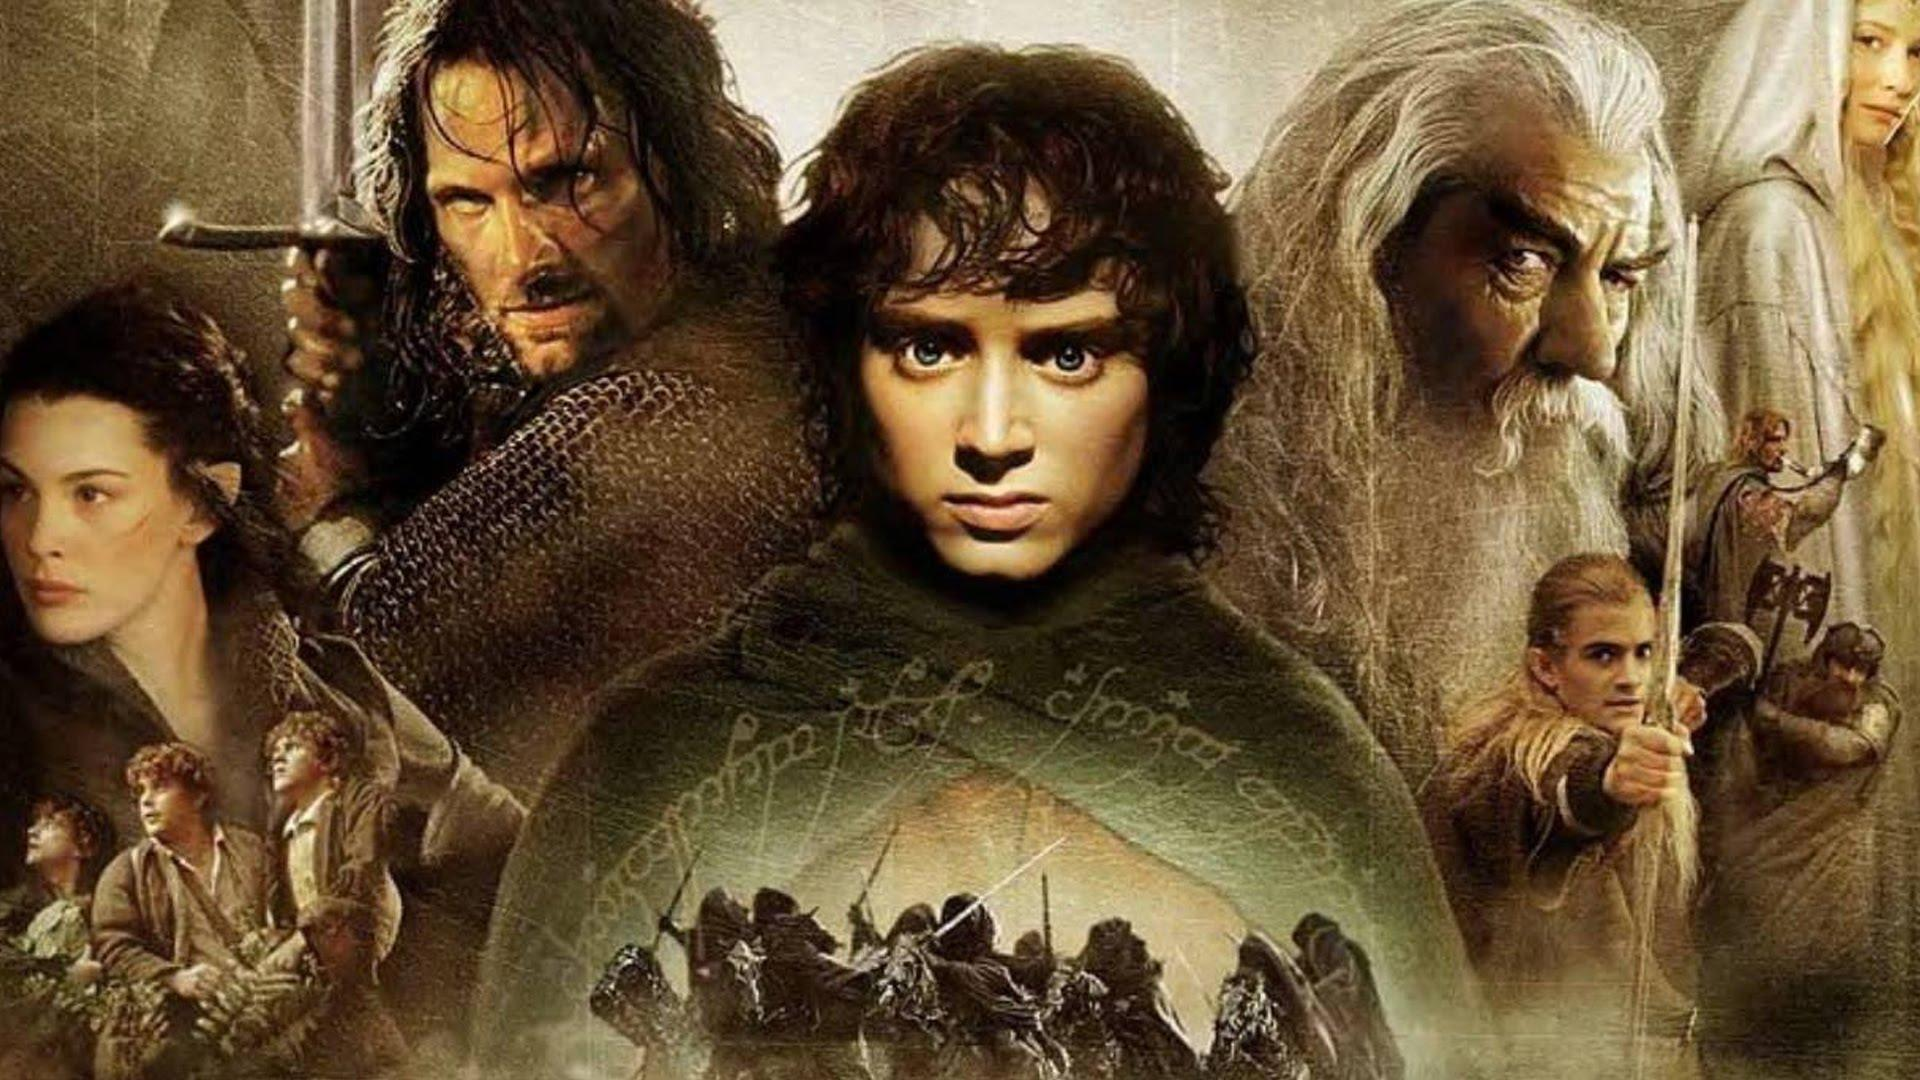 Amazon Developing Lord of the Rings Online Multiplayer Game